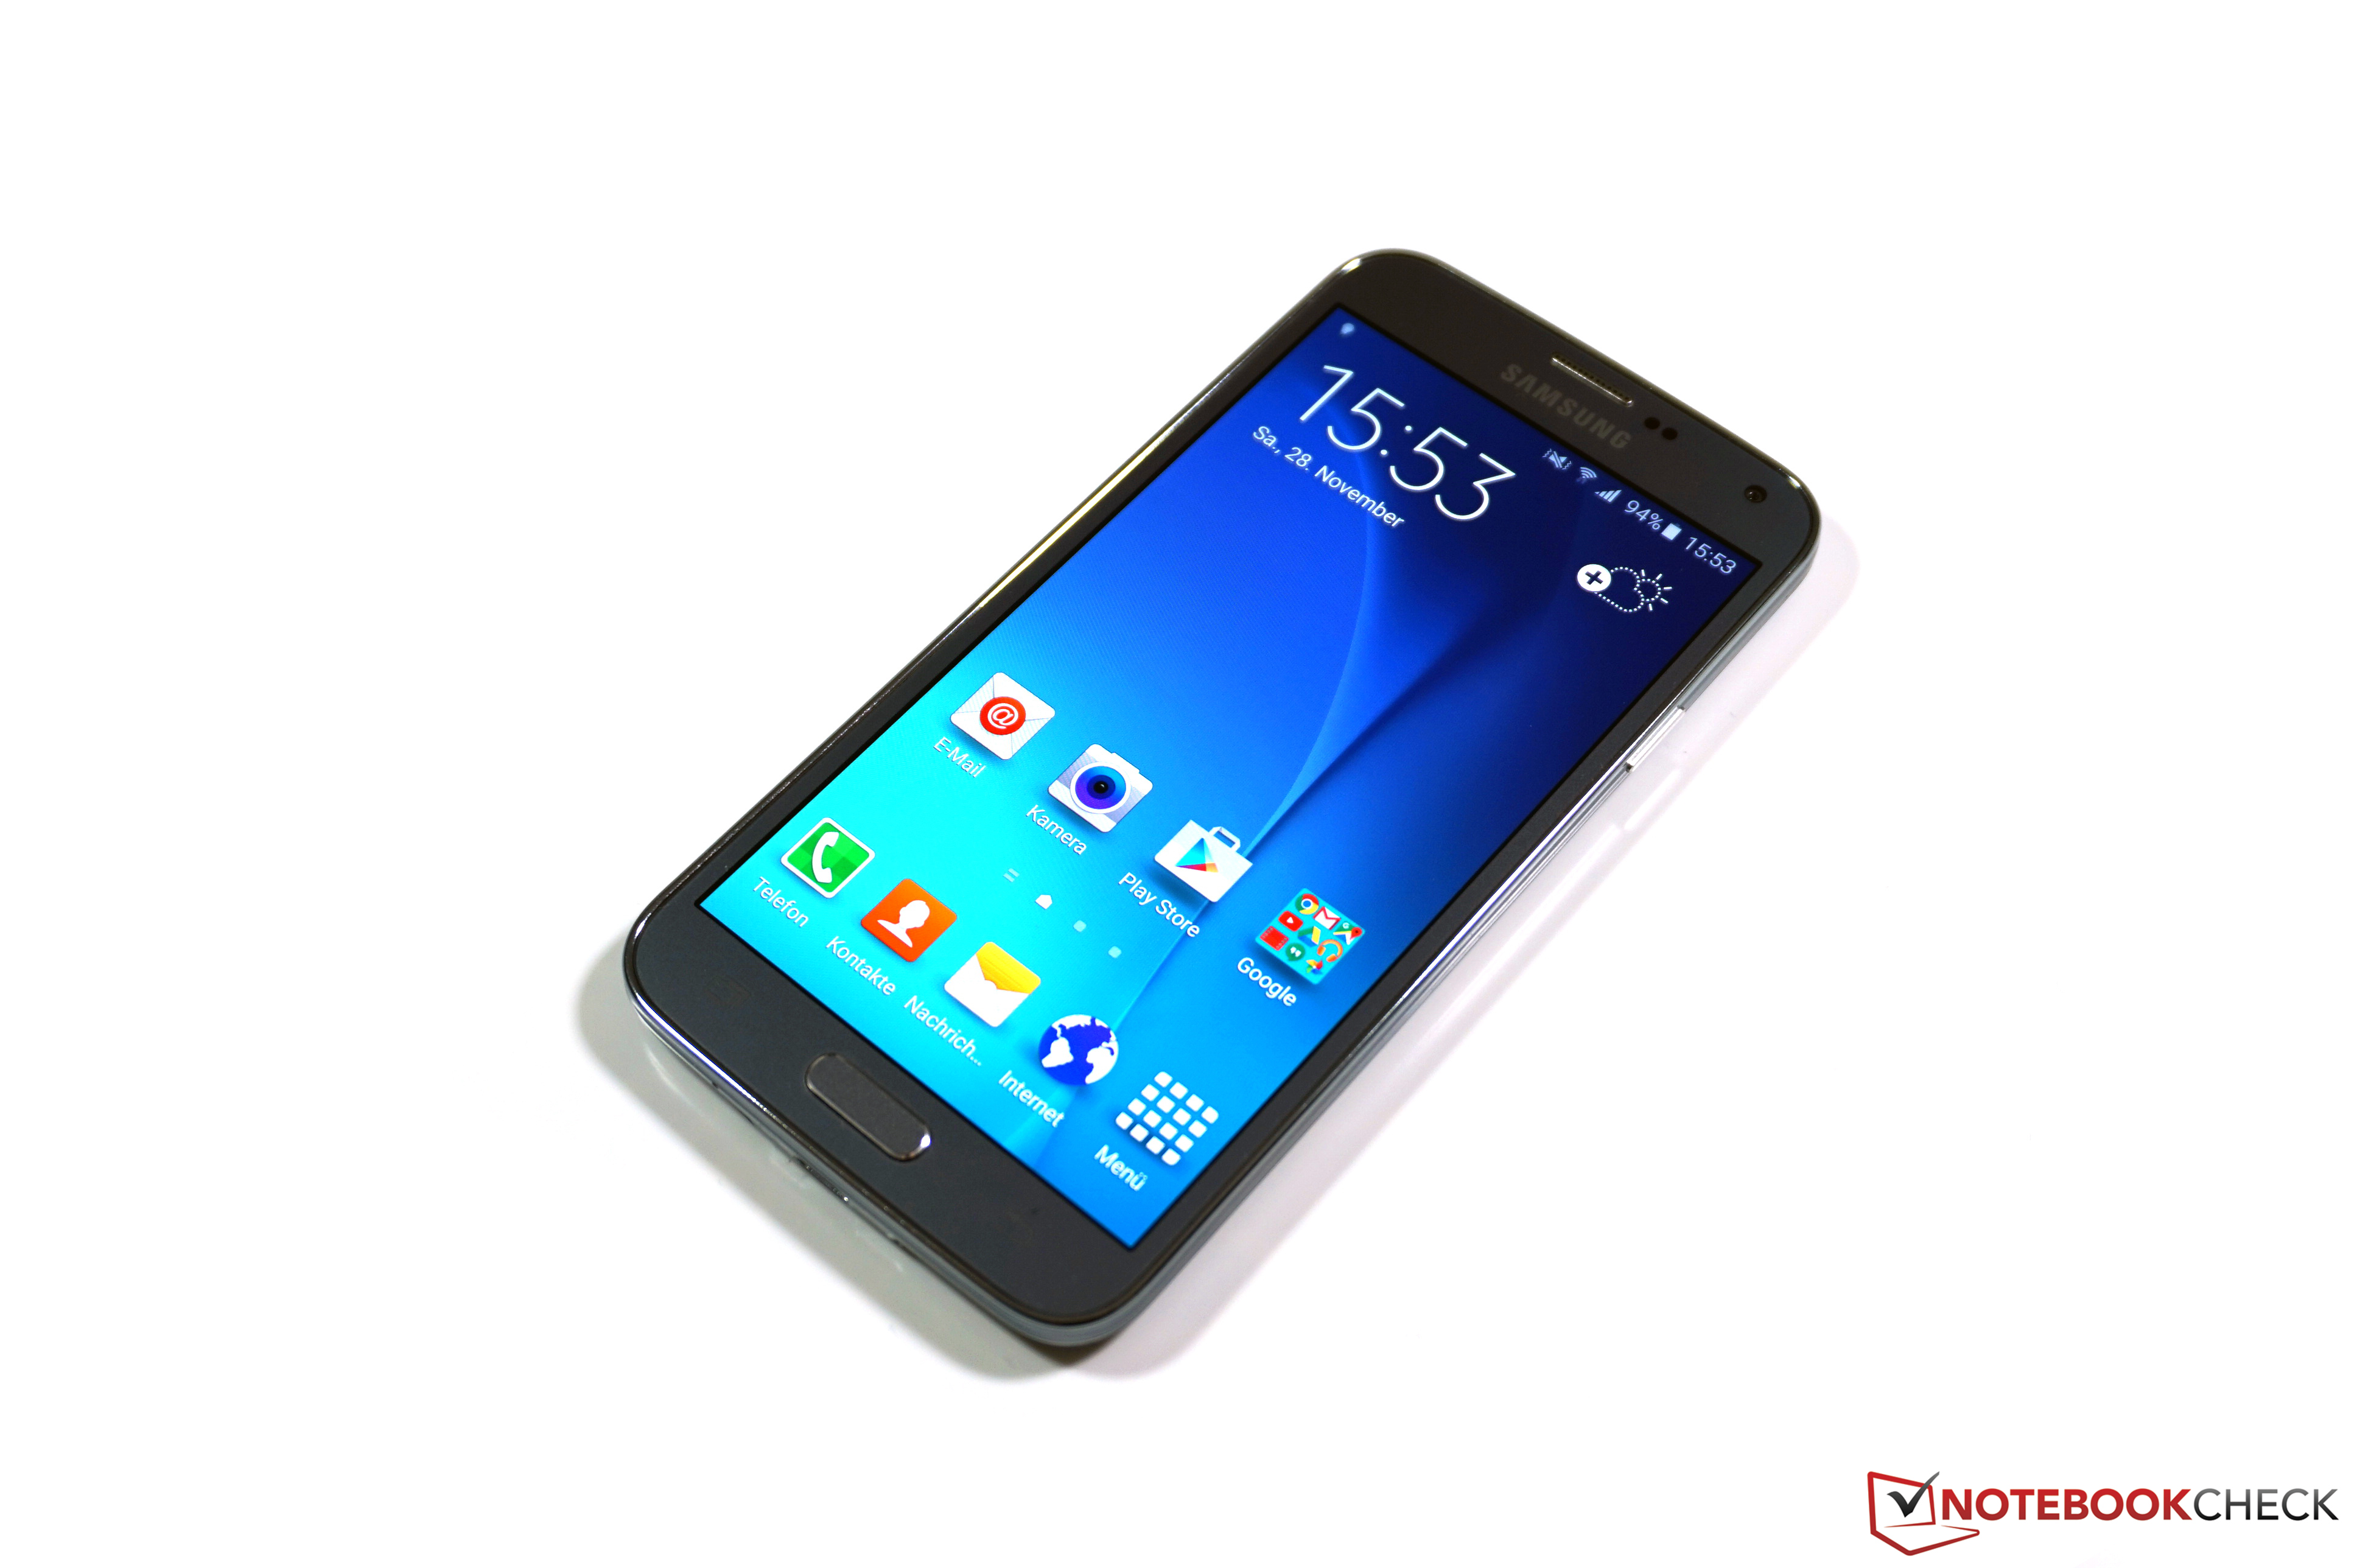 samsung galaxy s5 neo smartphone review notebookcheck. Black Bedroom Furniture Sets. Home Design Ideas